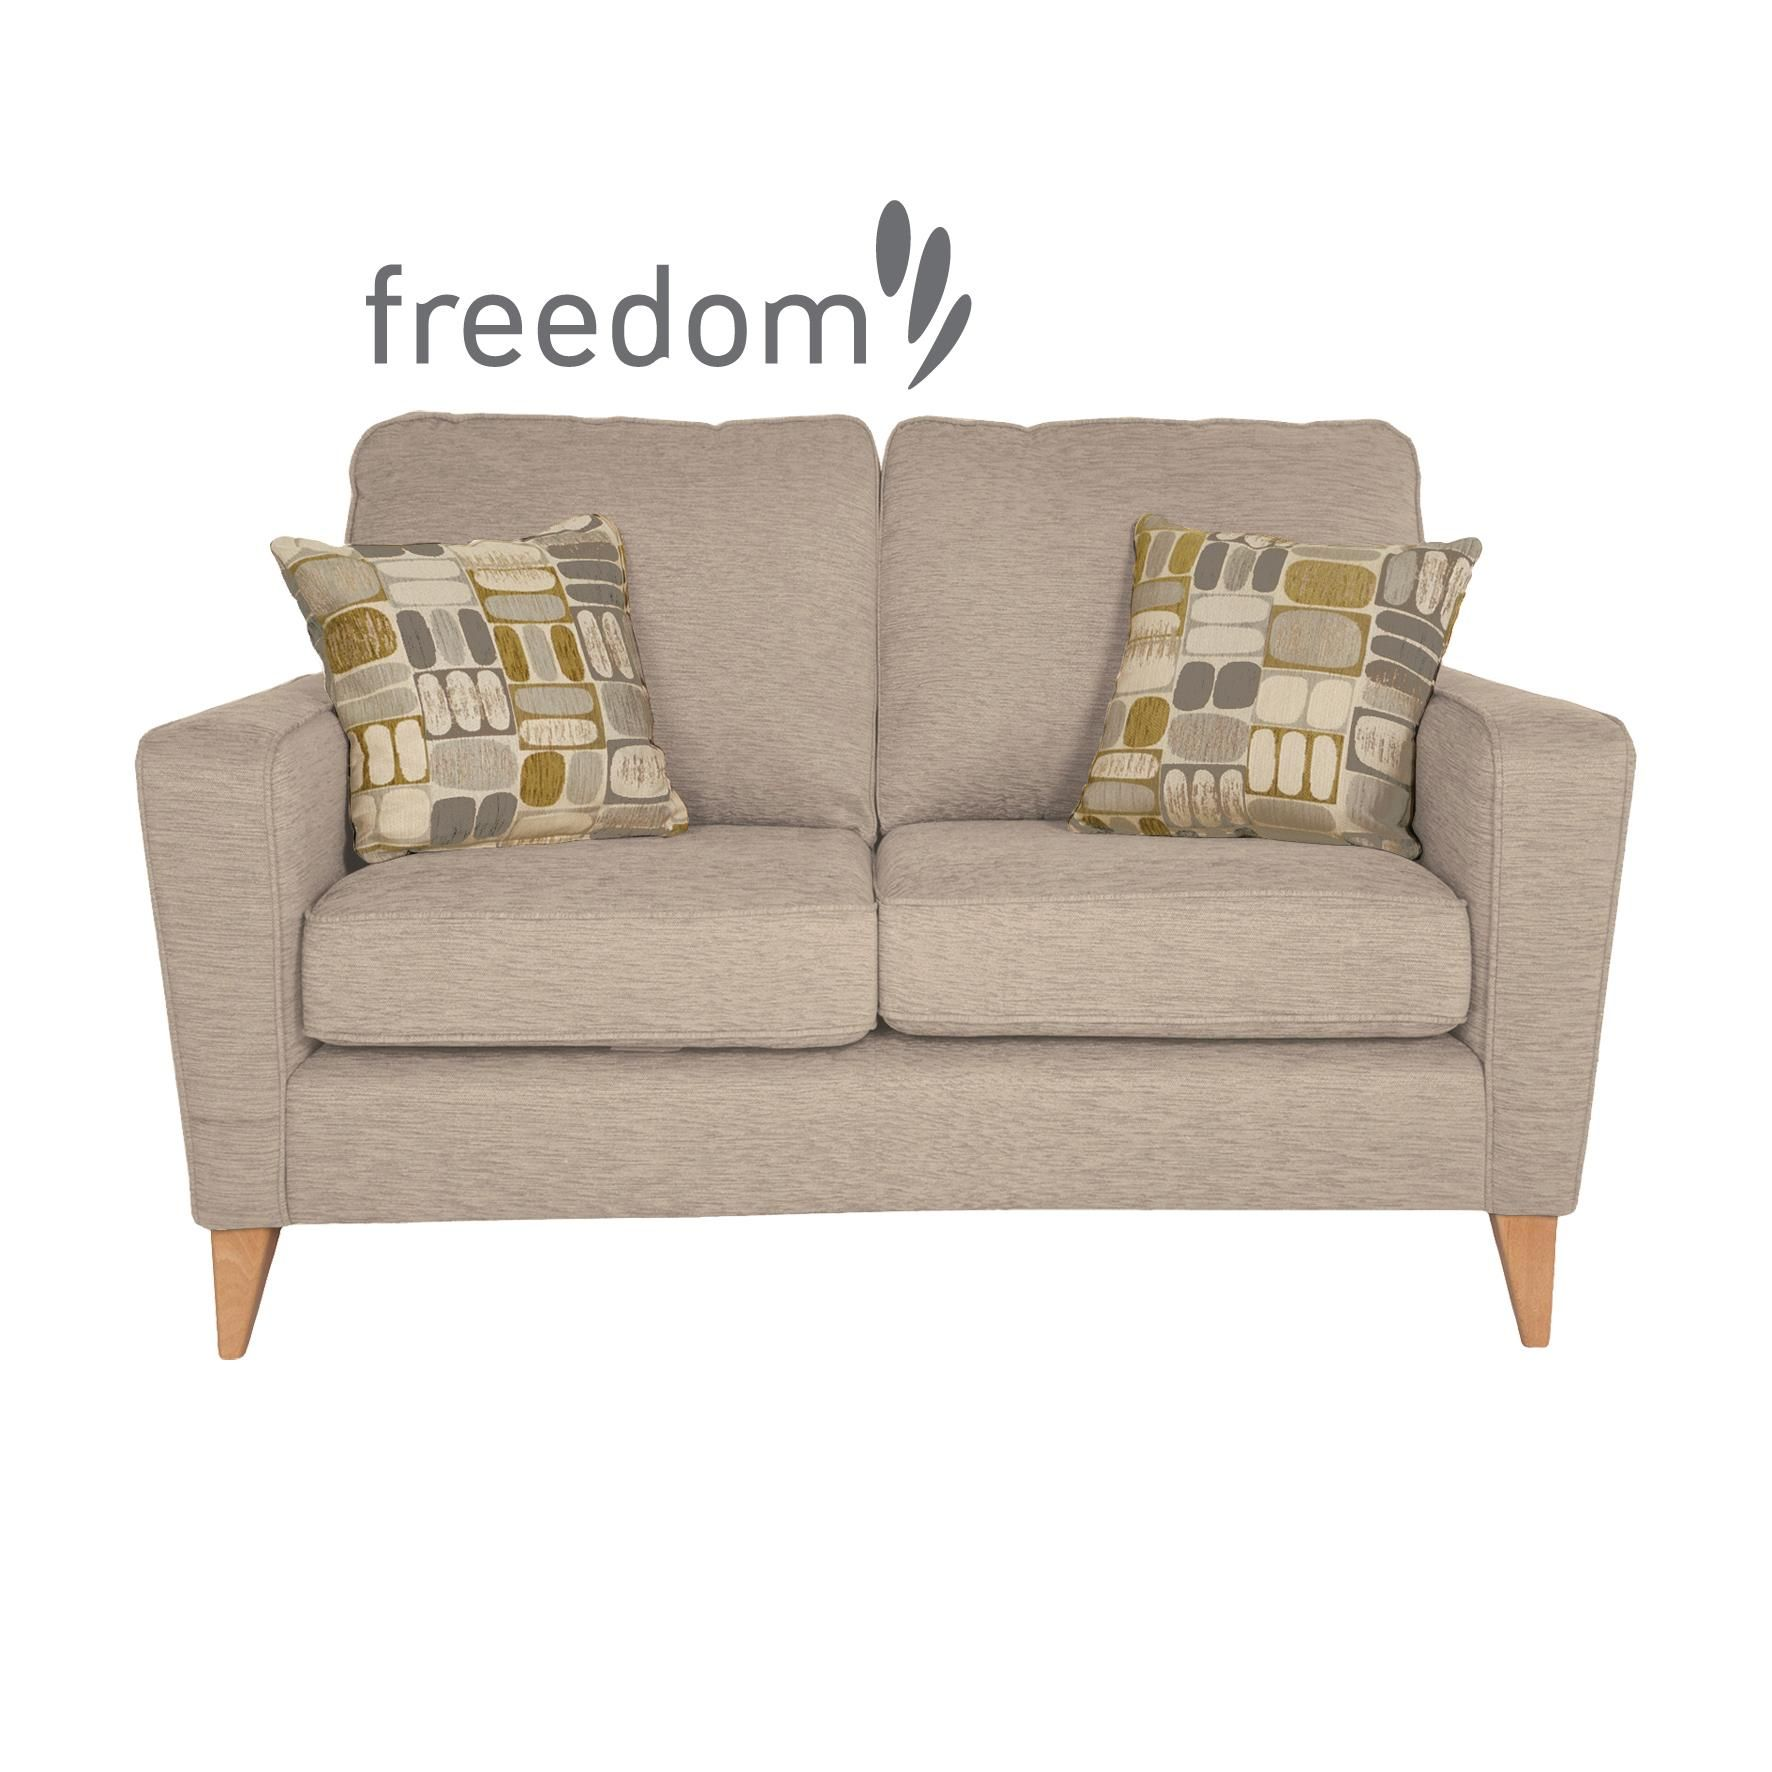 Large pewter fyfield sofa with dark wood feet debenhams item no large pewter fyfield sofa with dark wood feet debenhams item no3220015431 5 55 5 open ratings snapshot read all 2 reviews write a review th parisarafo Choice Image